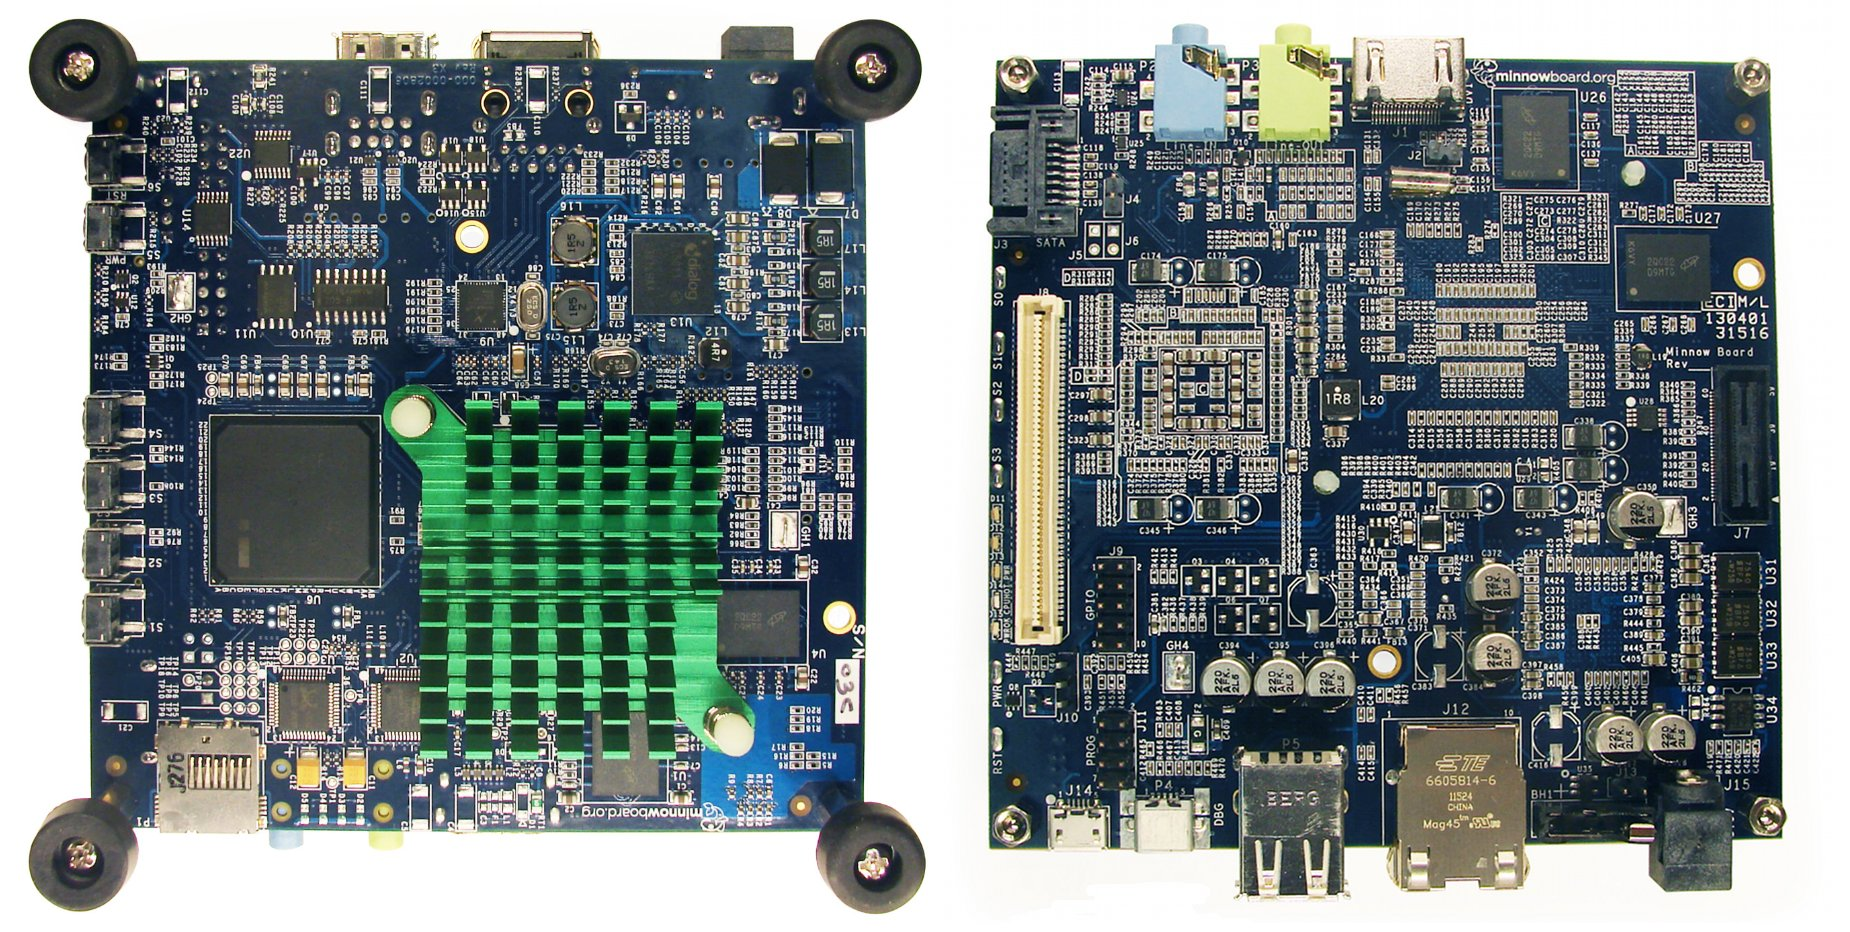 INTEL to release Open Source Hardware board based on Atom E640 | olimex